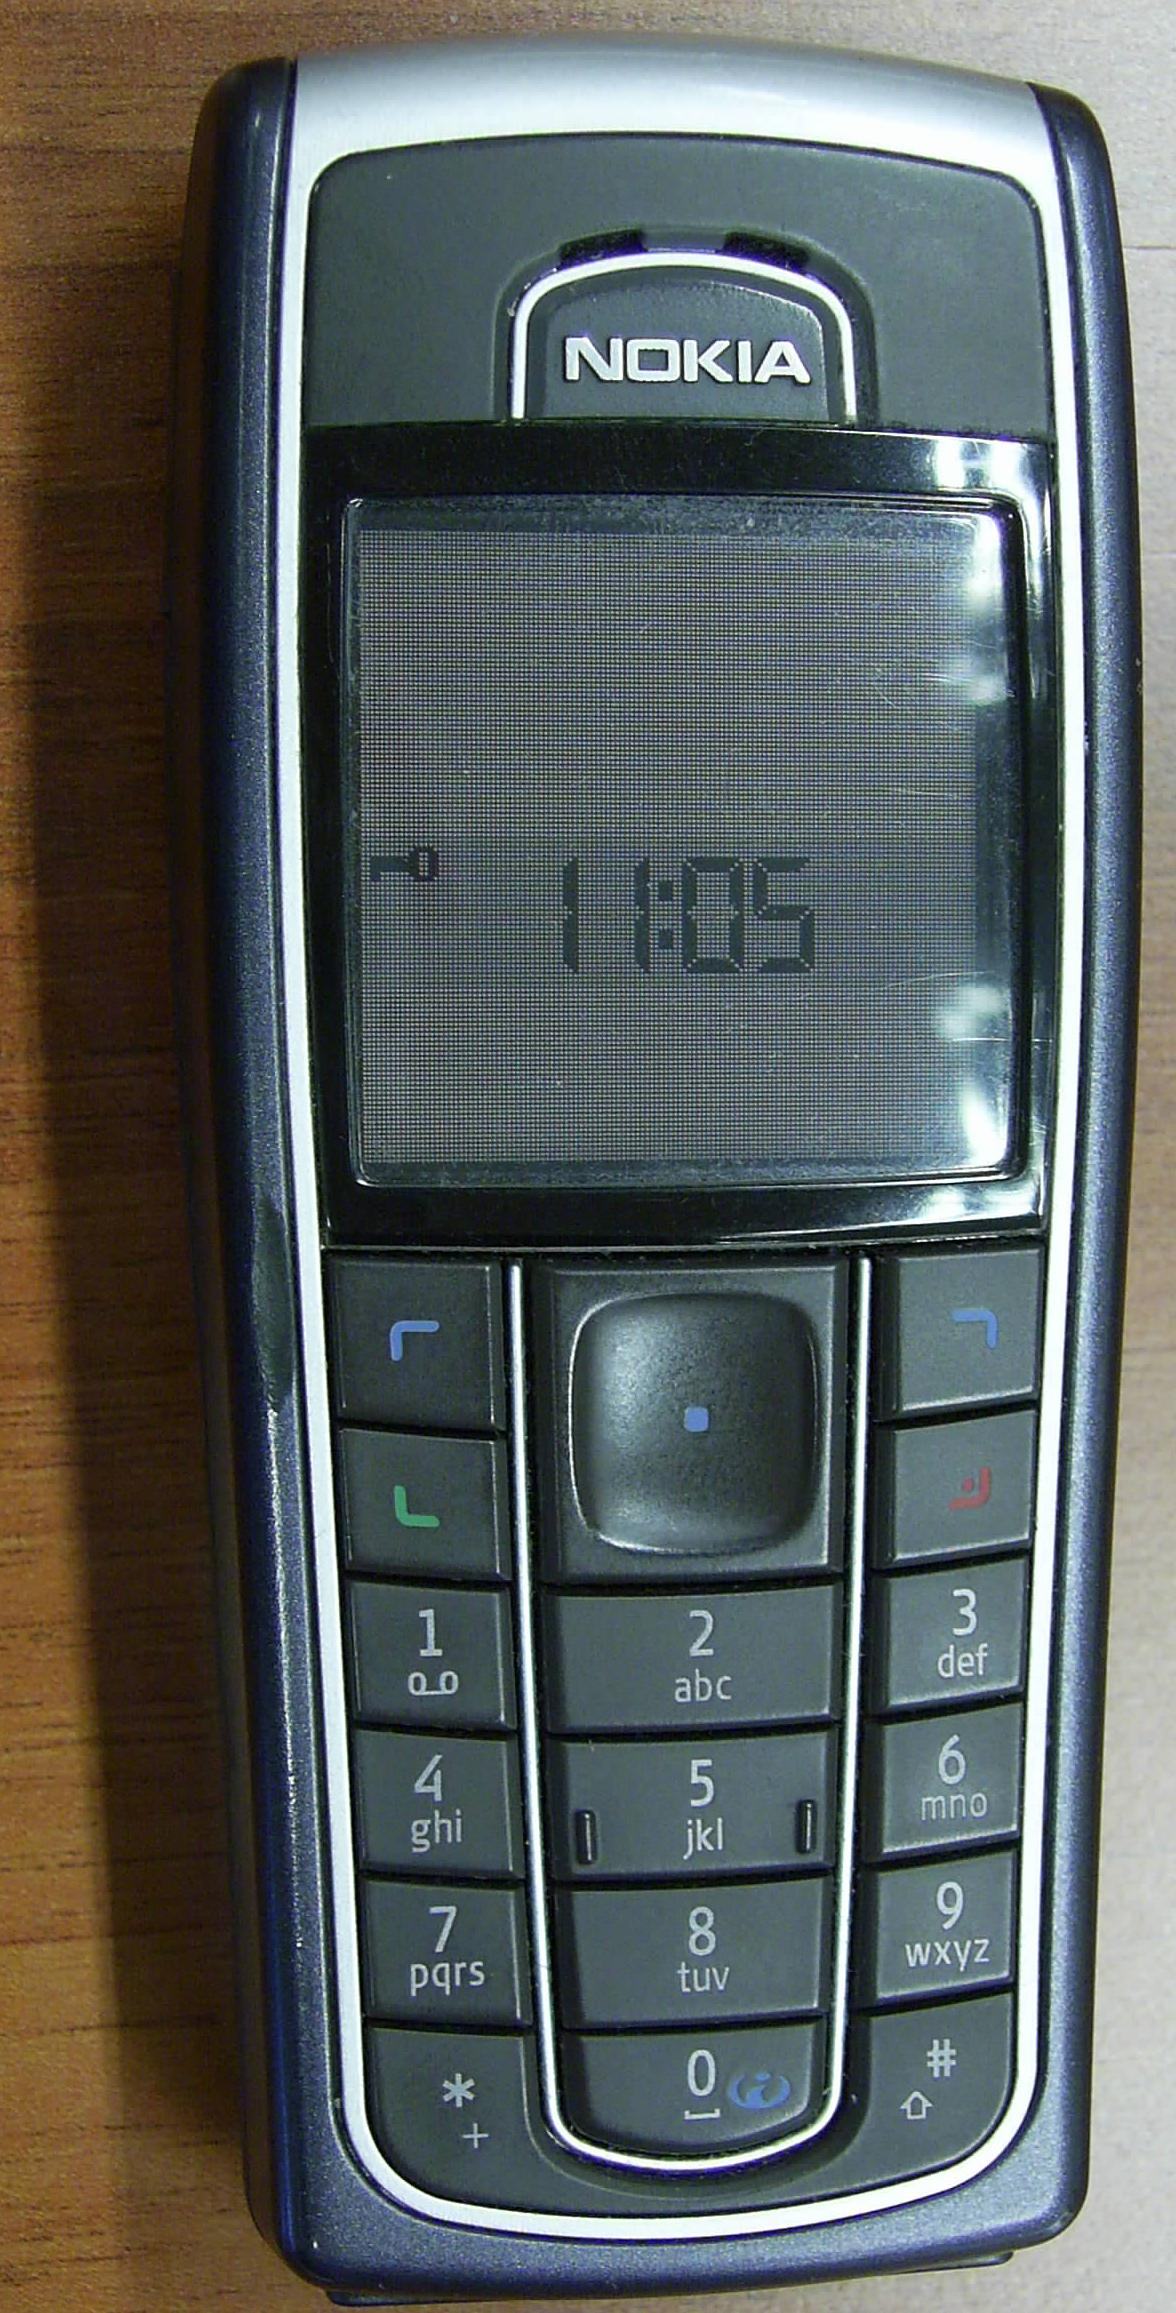 File Nokia 6230i 01 jpg   Wikipedia  the free encyclopedia